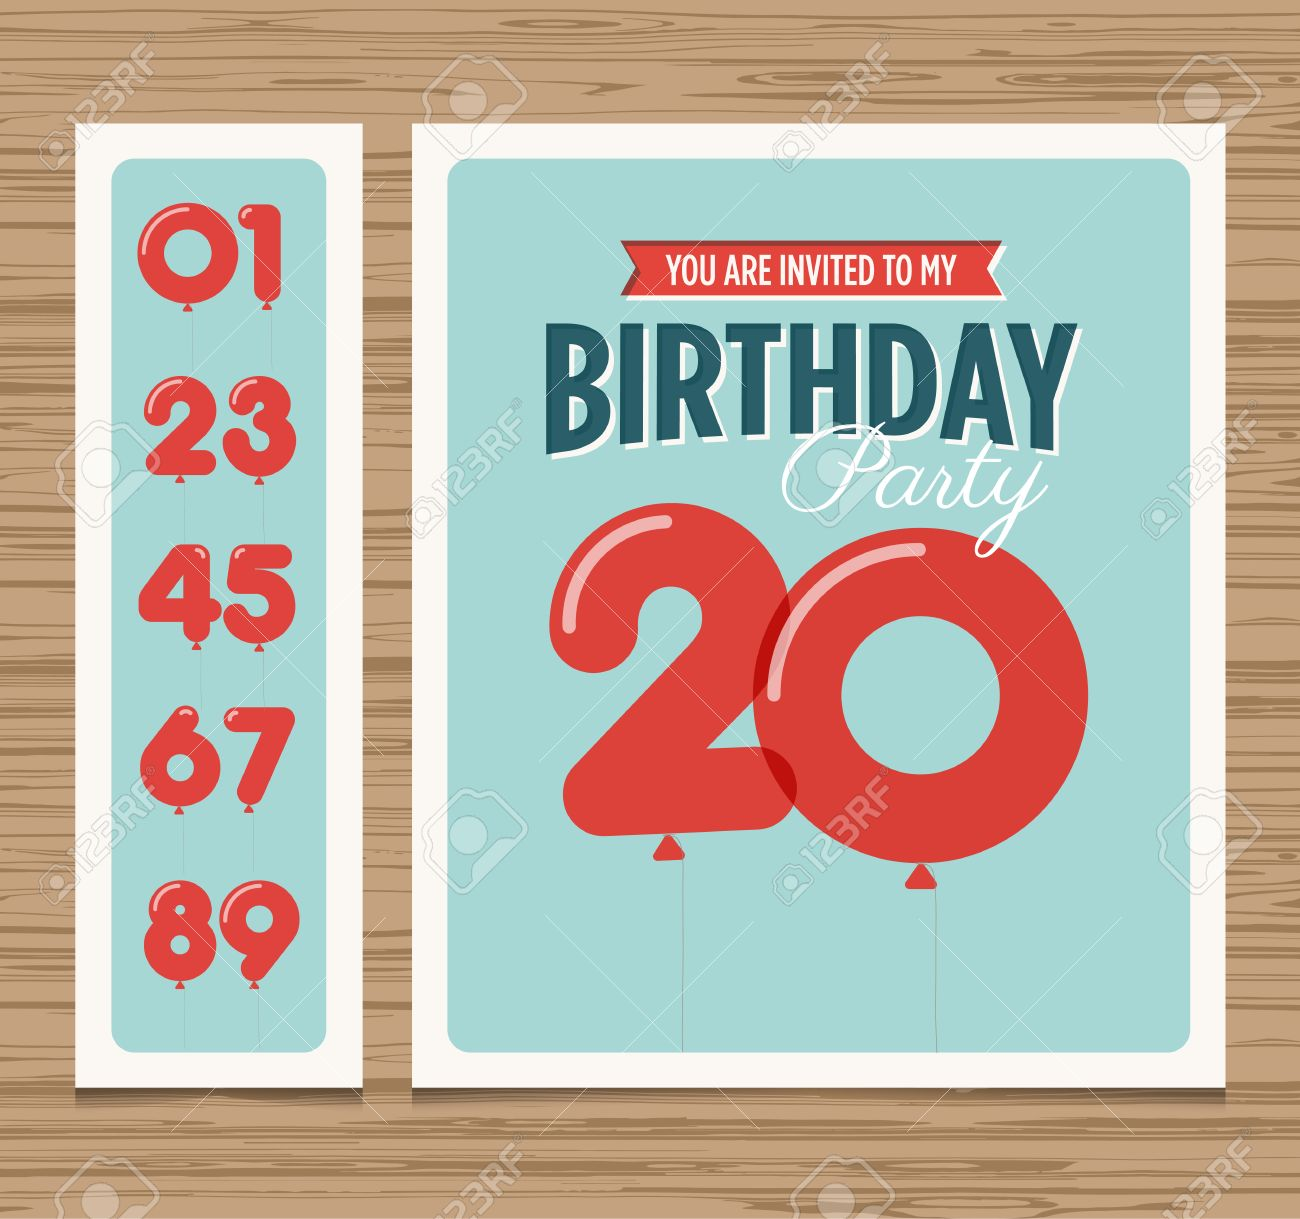 birthday party design templates ; 24019051-birthday-party-invitation-card-balloons-numbers-vector-design-template